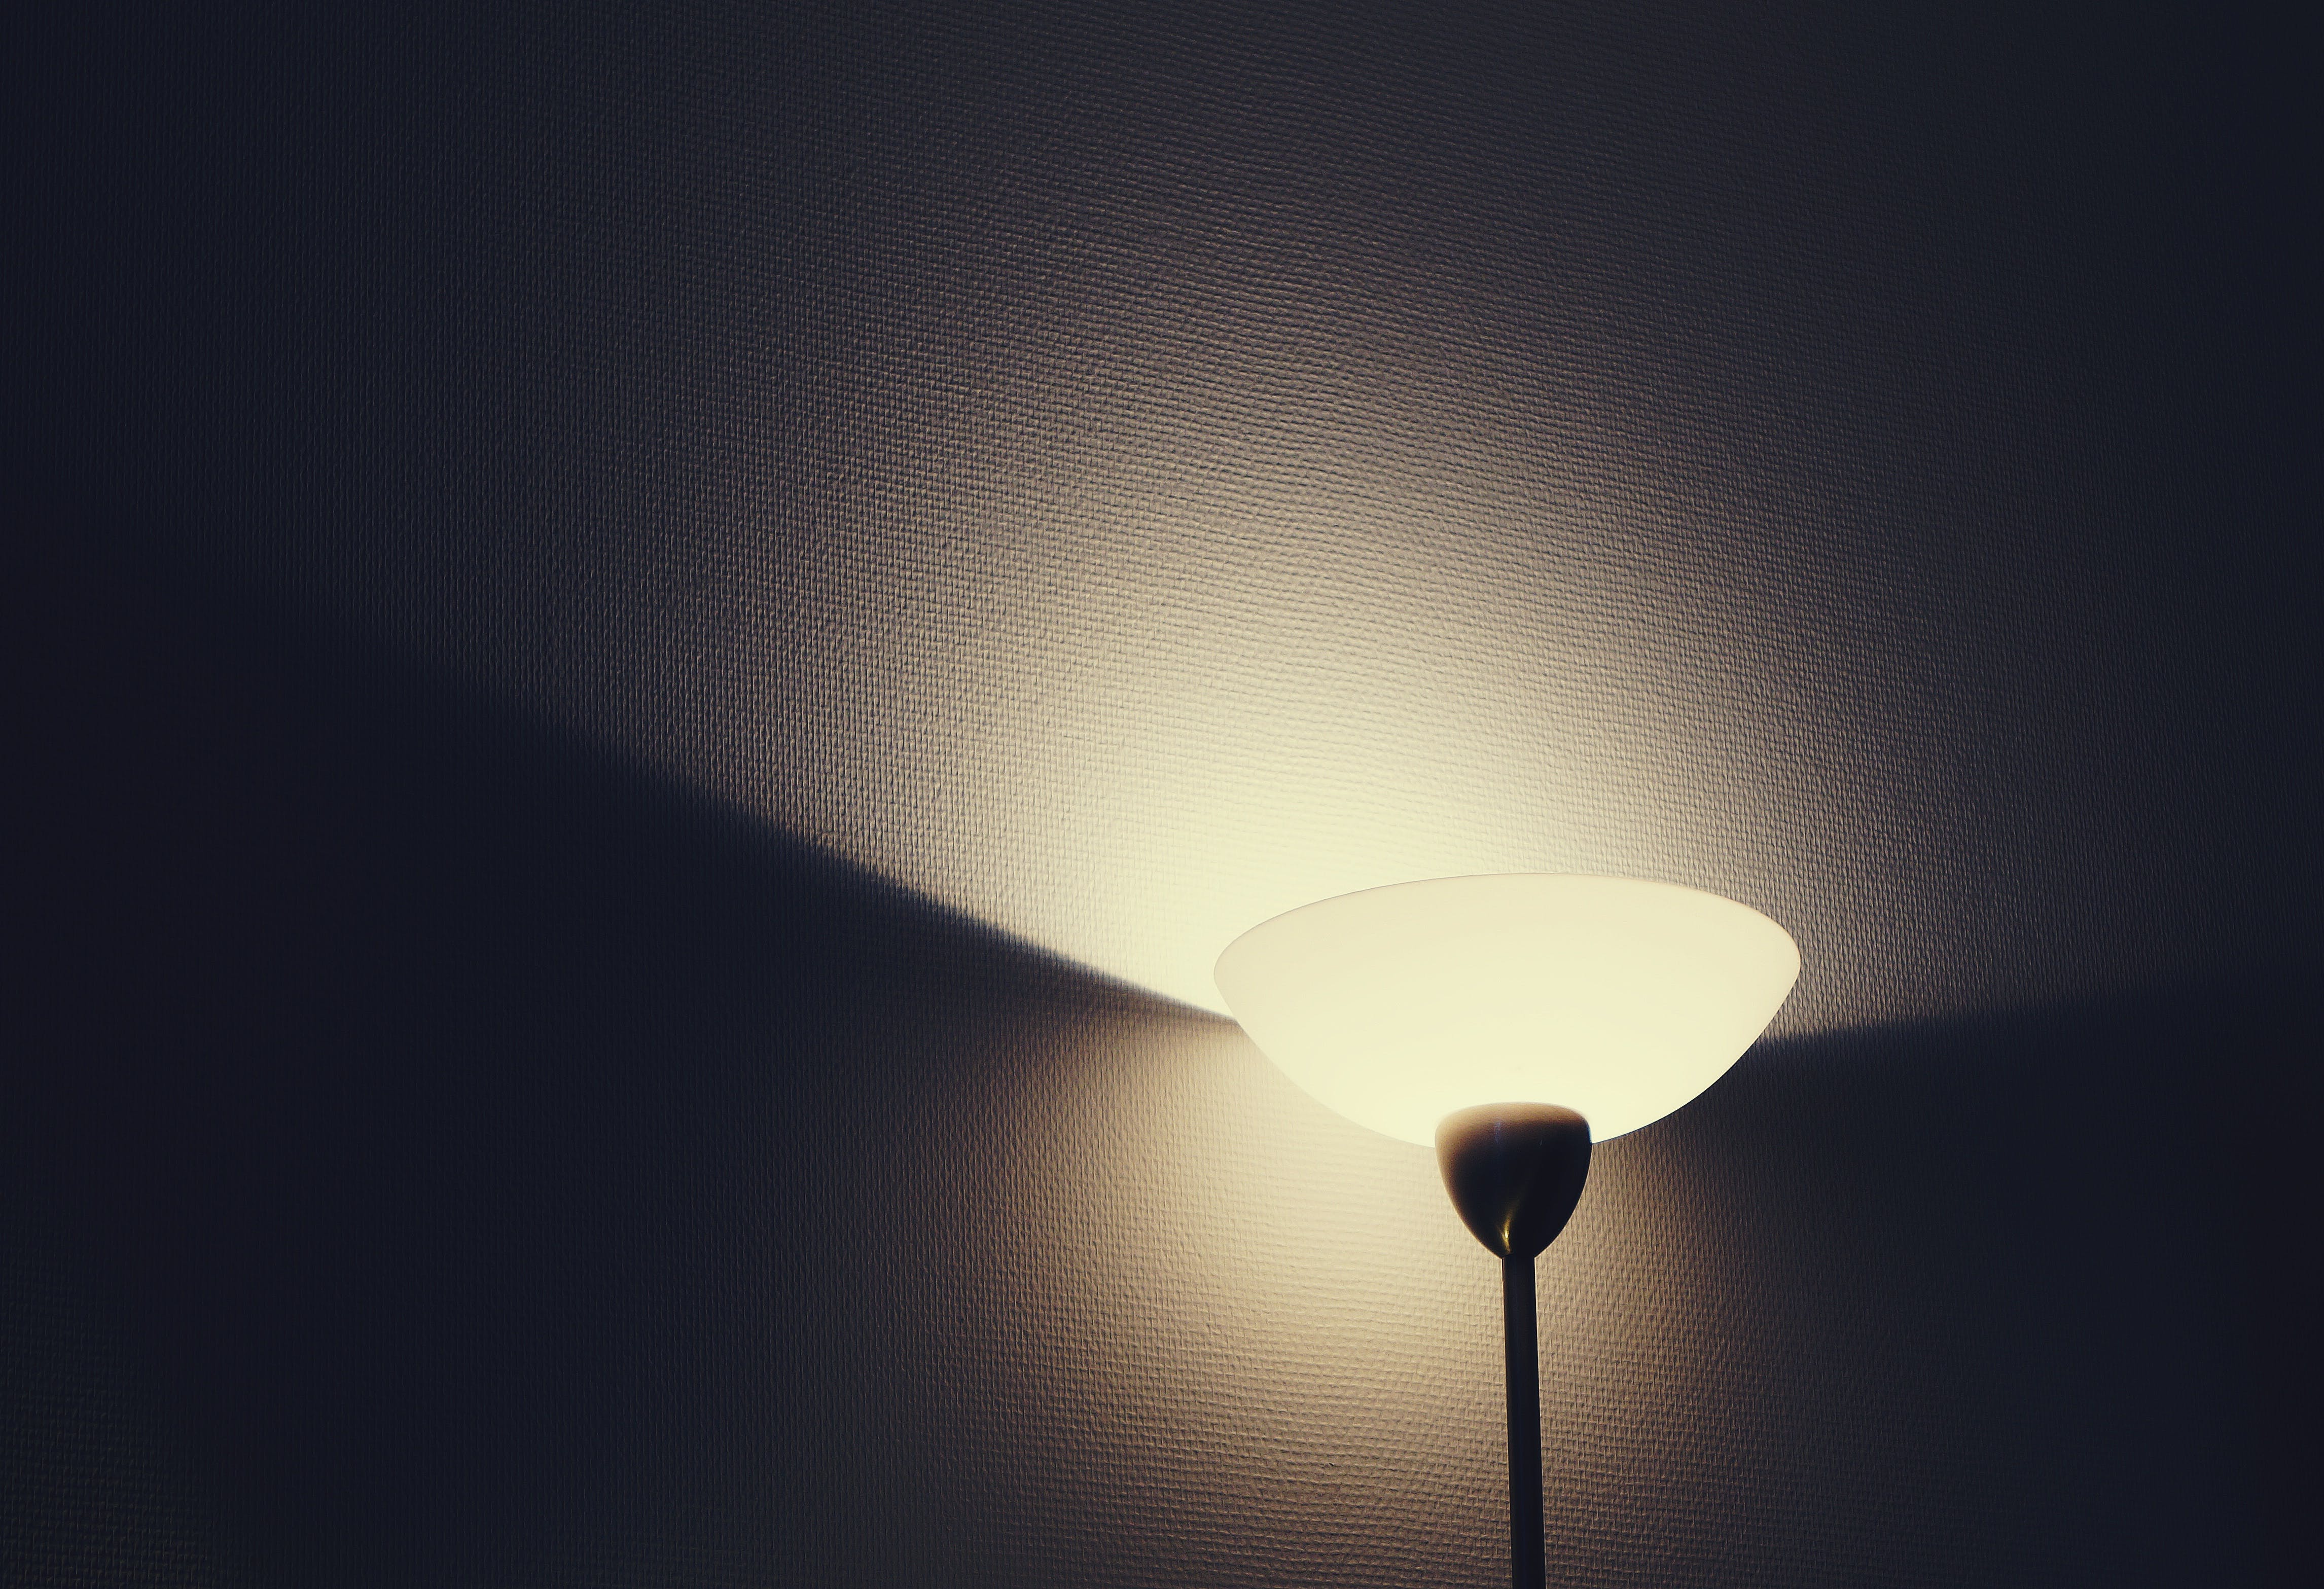 Black and White Stand Lamp